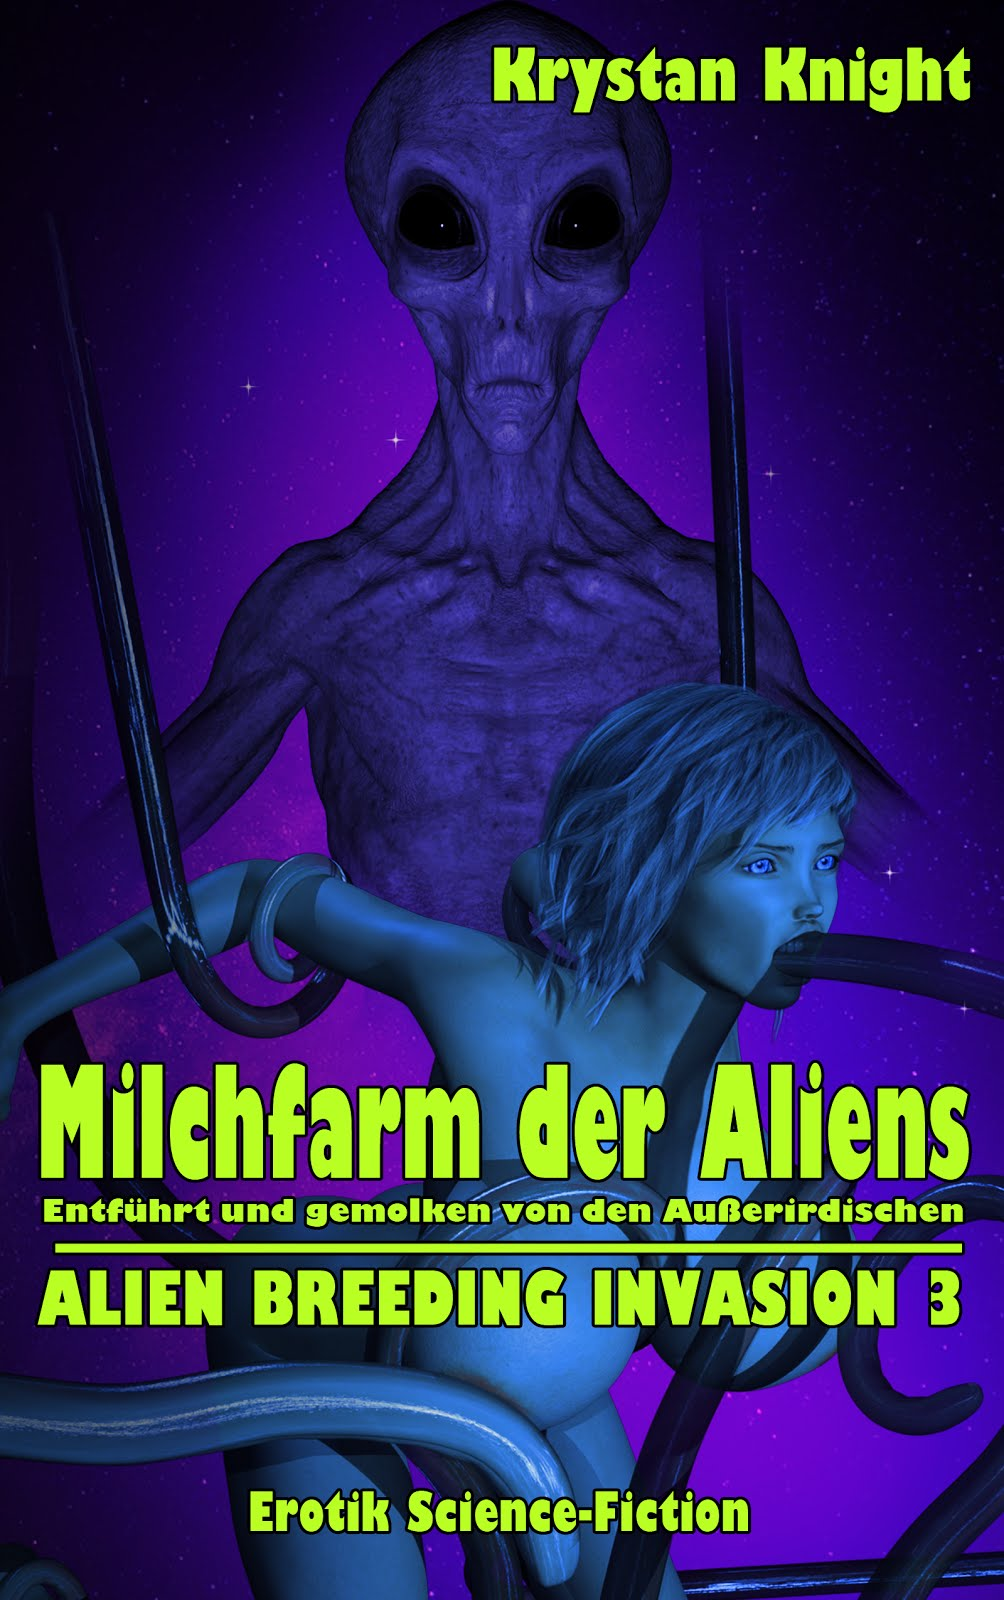 Alien Breeding Invasion 3